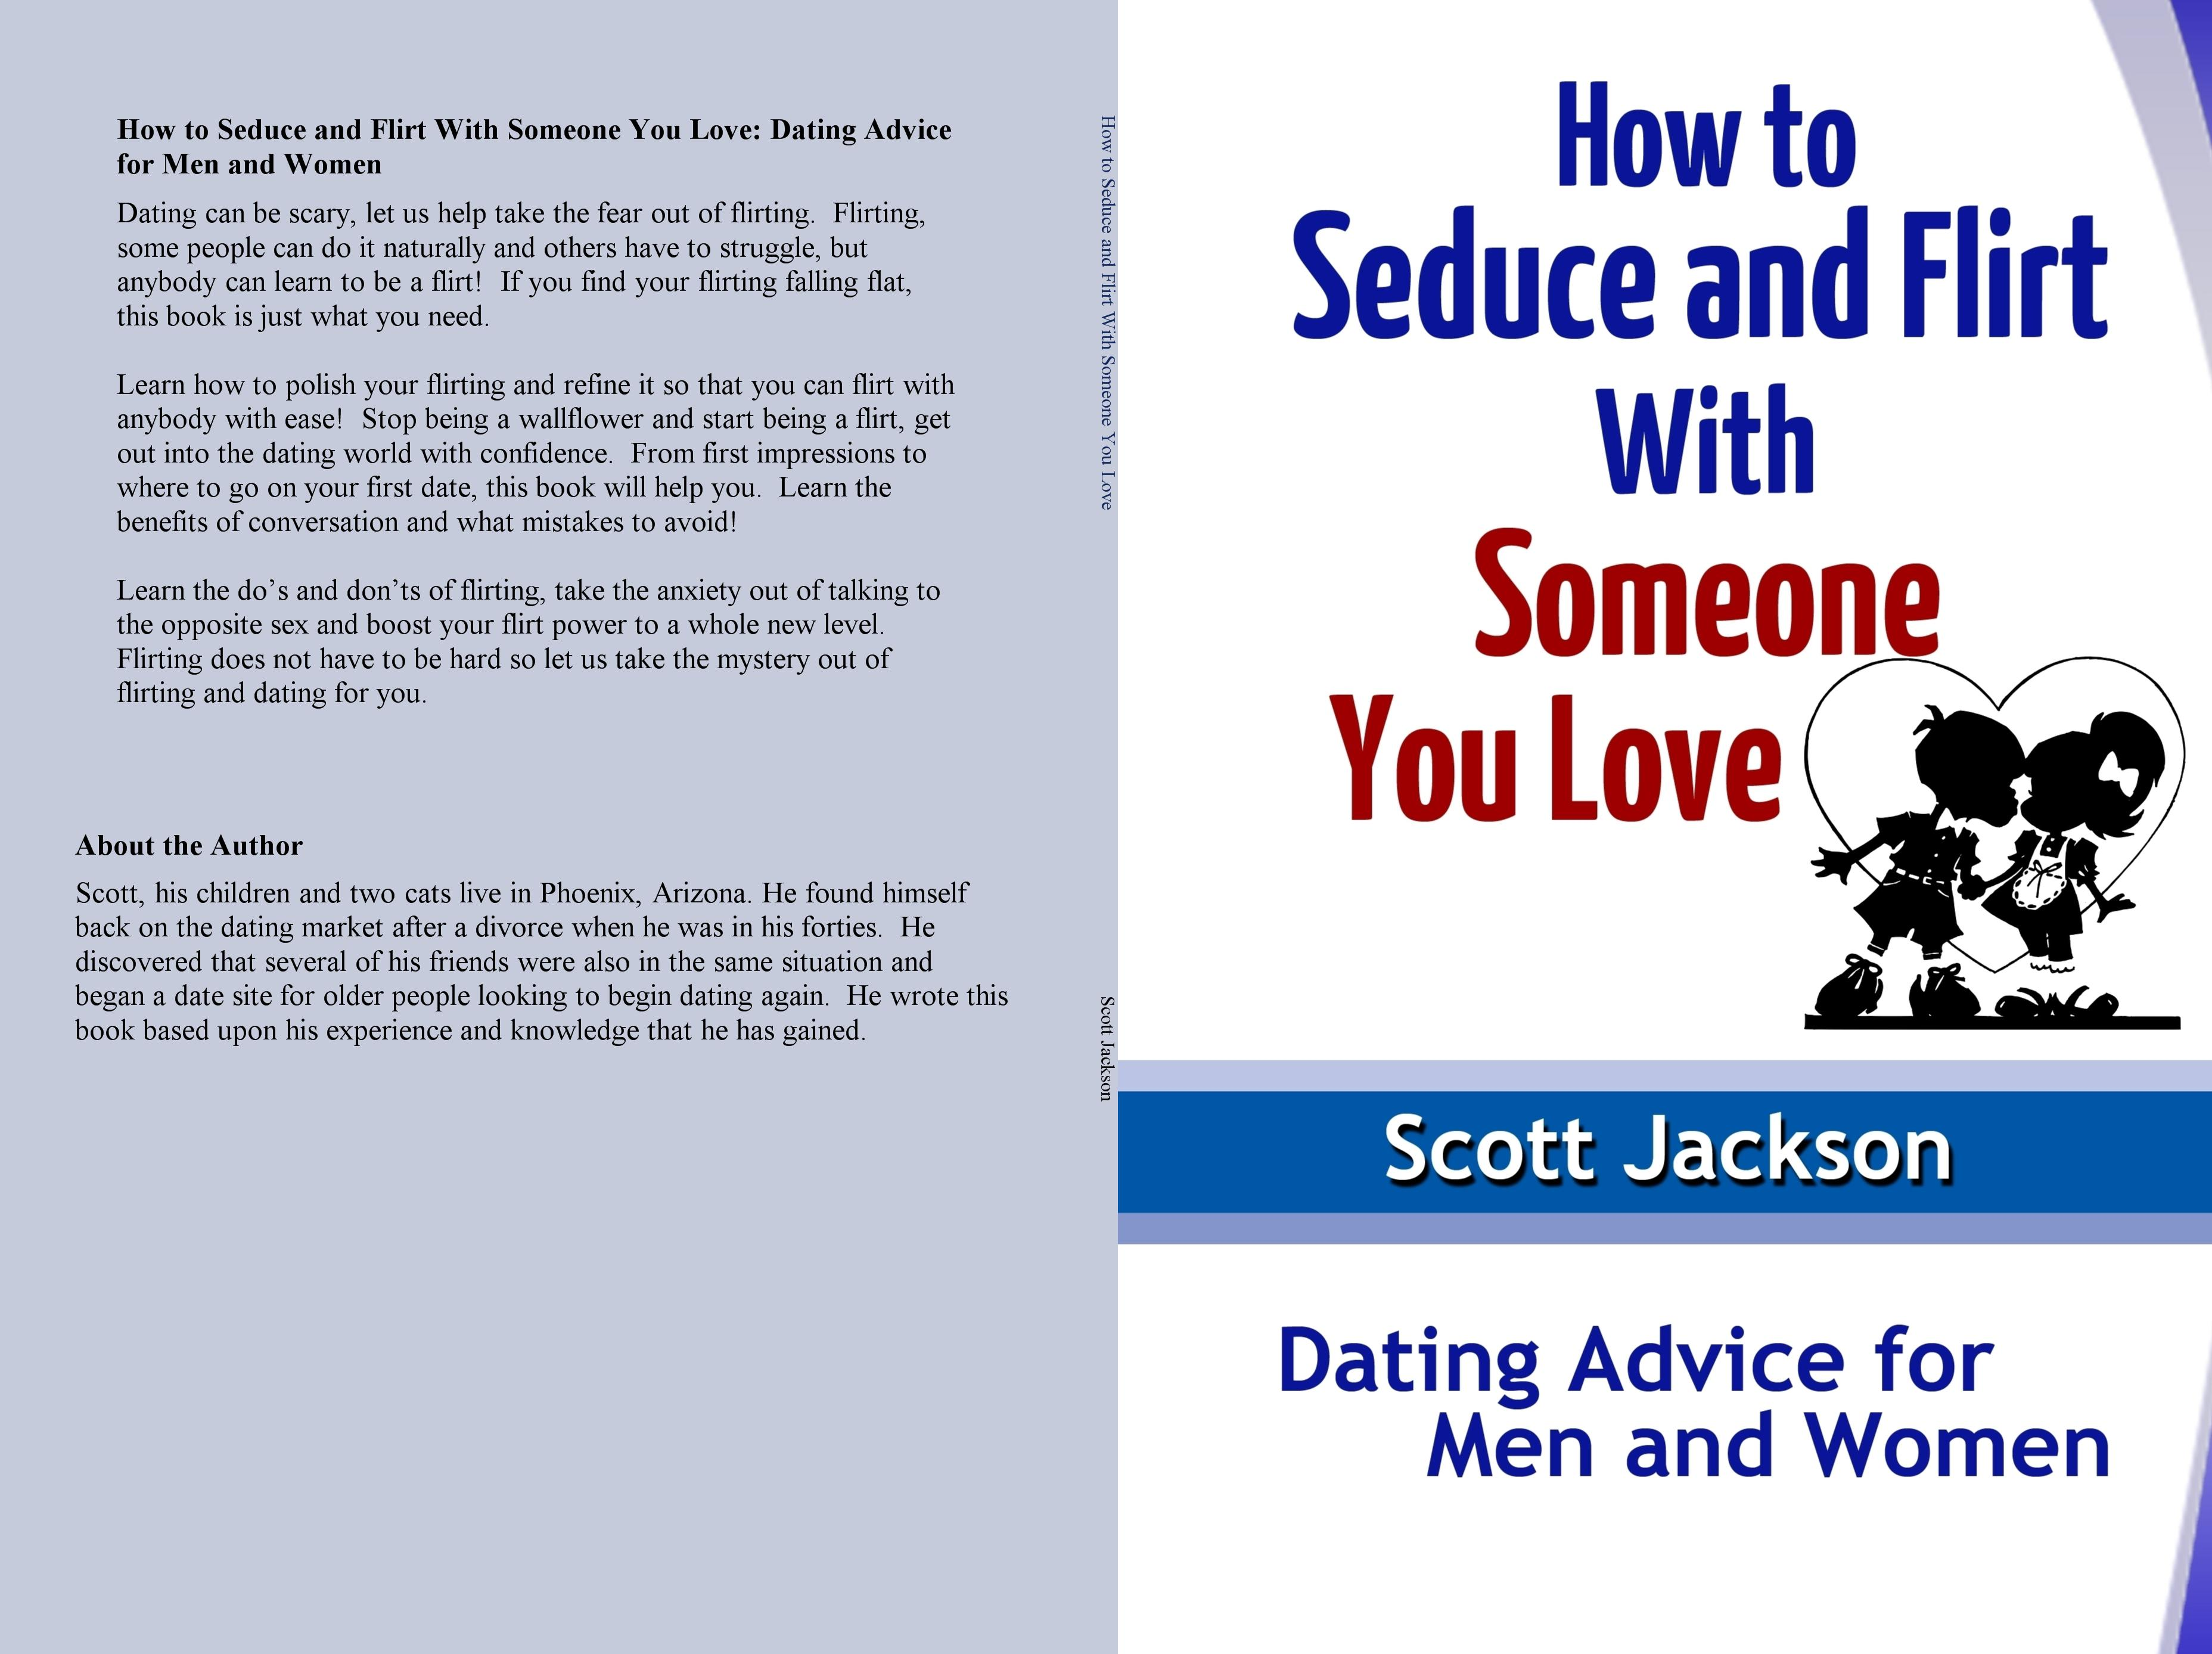 How to Seduce and Flirt With Someone You Love cover image